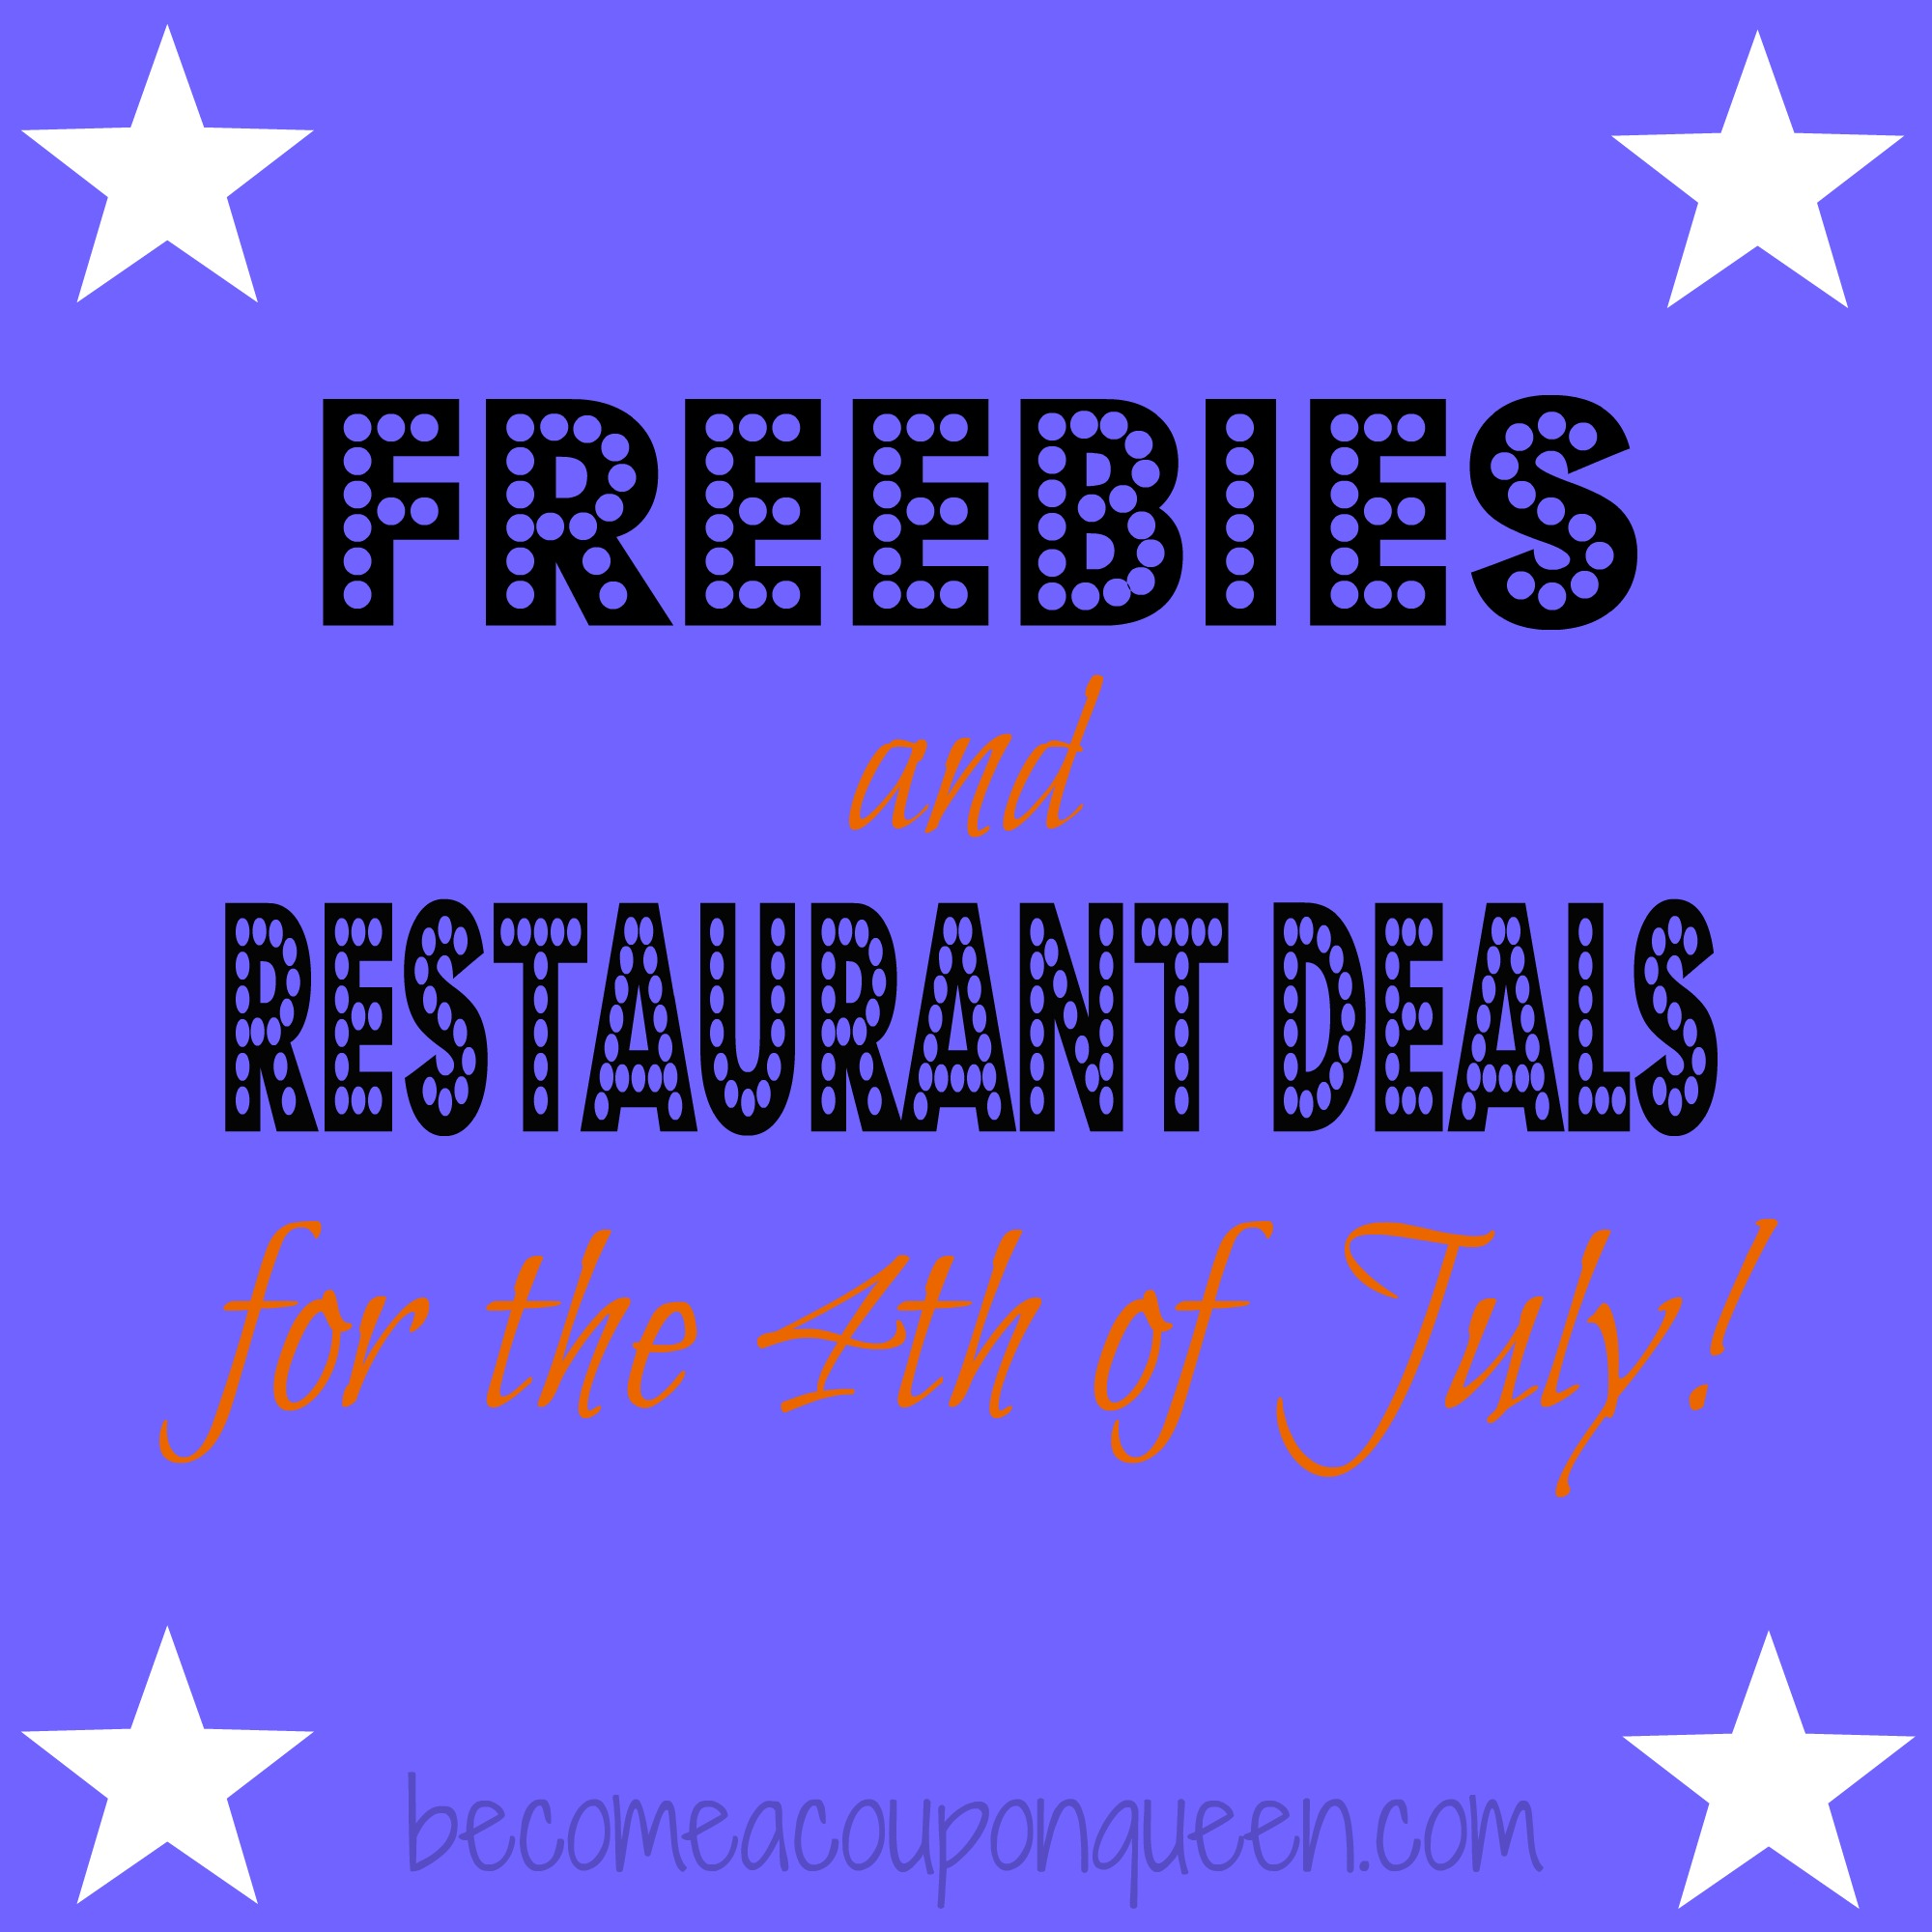 4th of July Freebies and Restaurant Deals!